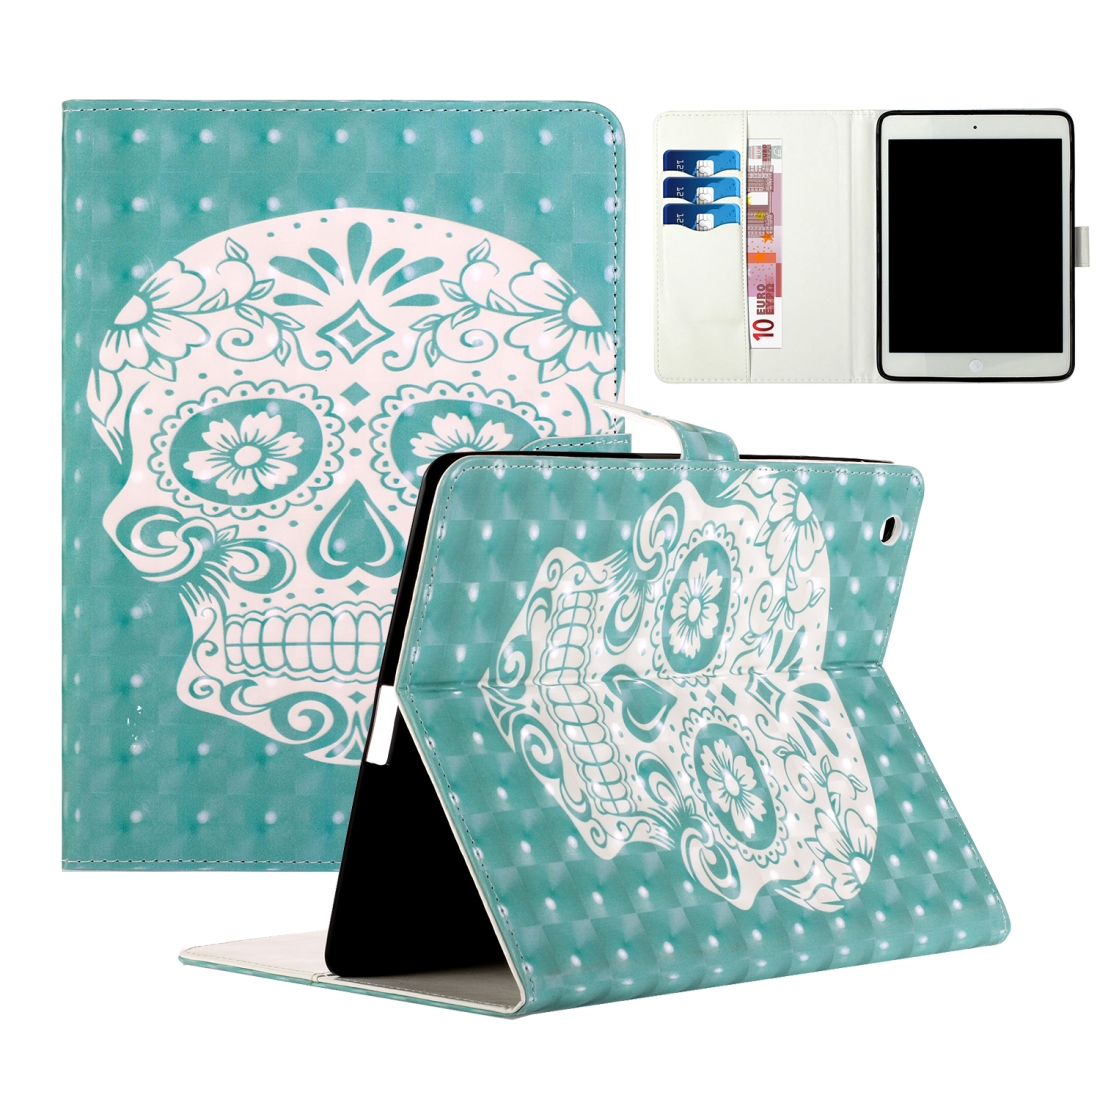 iPad 2 Case Fits iPad 2,3,4, With A Artsy Leather Design with Sleeve & Auto Sleep (Green Ghost)